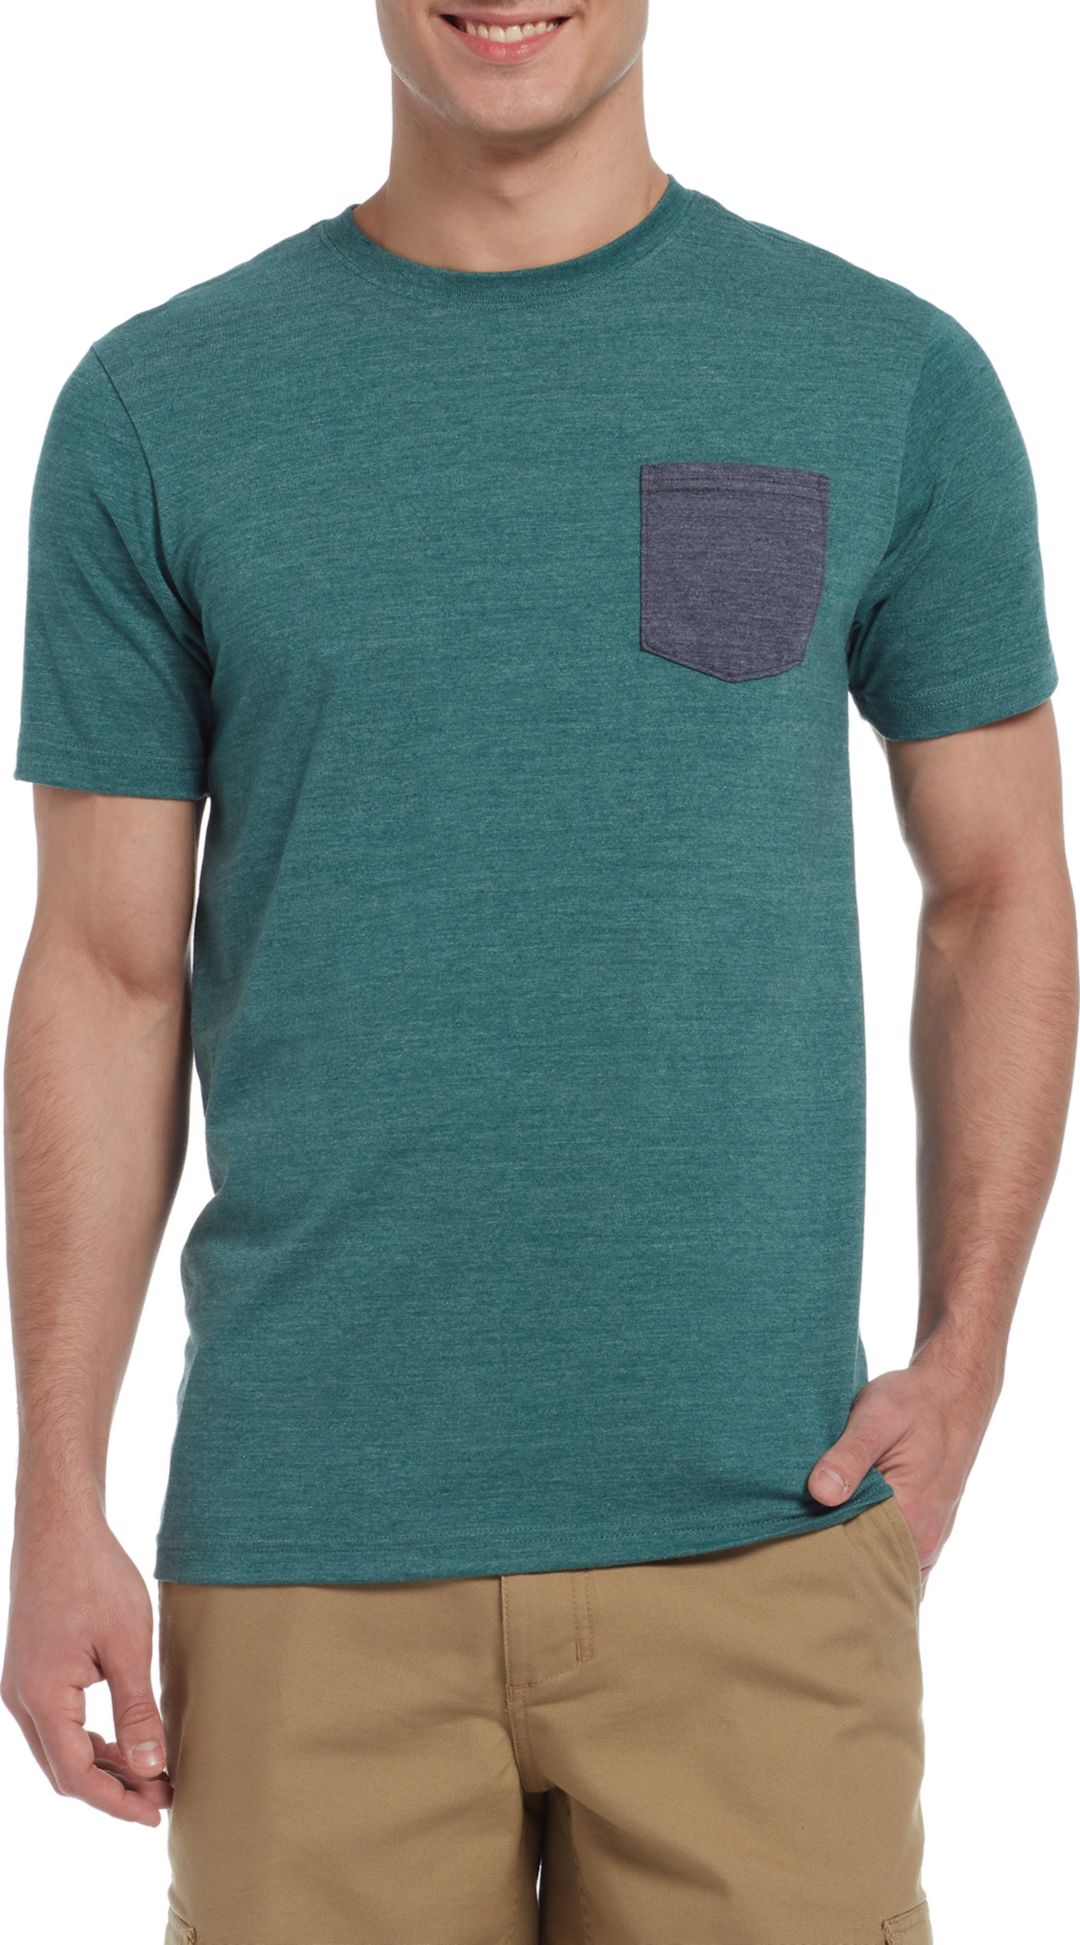 a83105d81 The North Face Men's Tri-Blend Pocket T-Shirt